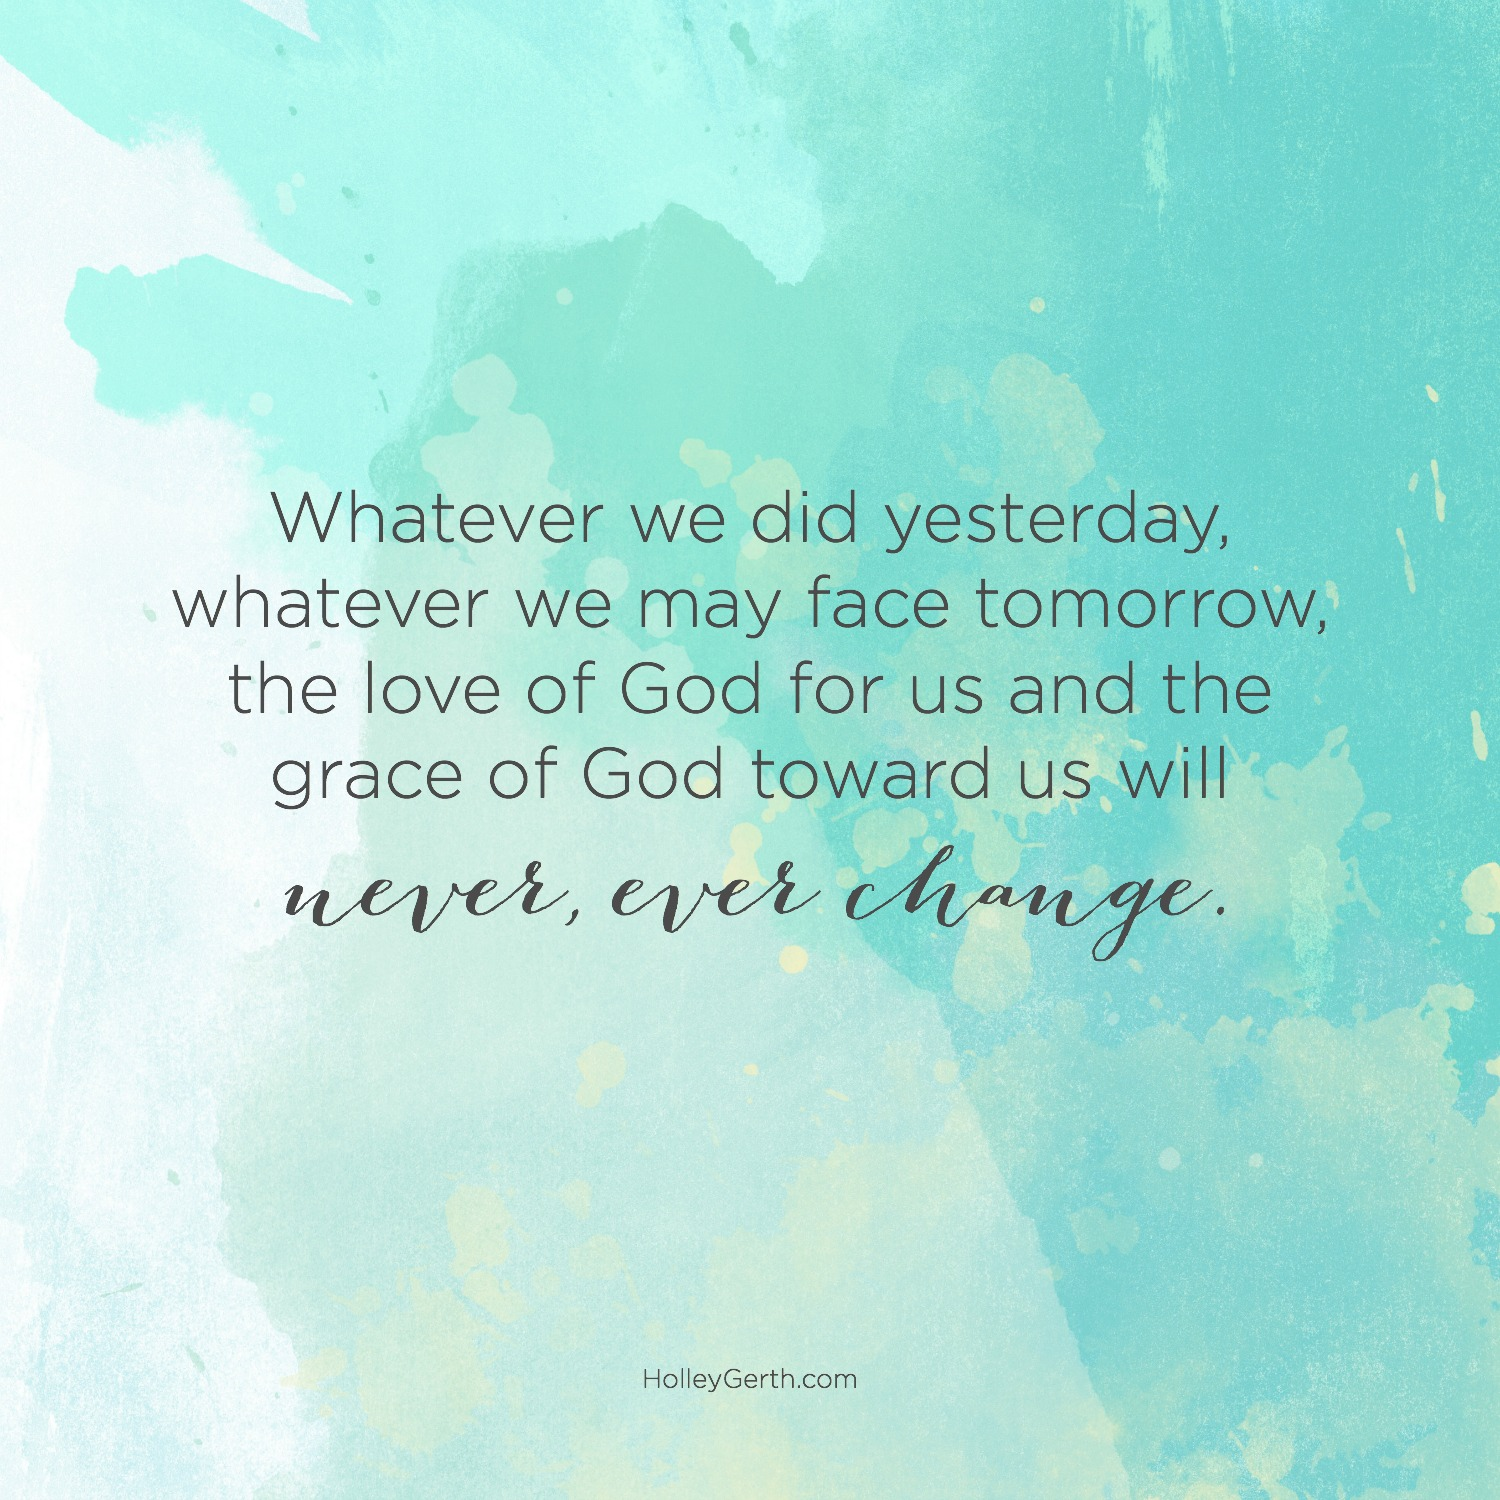 Whatever we did yesterday, whatever we may face tomorrow, the love of God for us and the grace of God toward us will never, ever change.